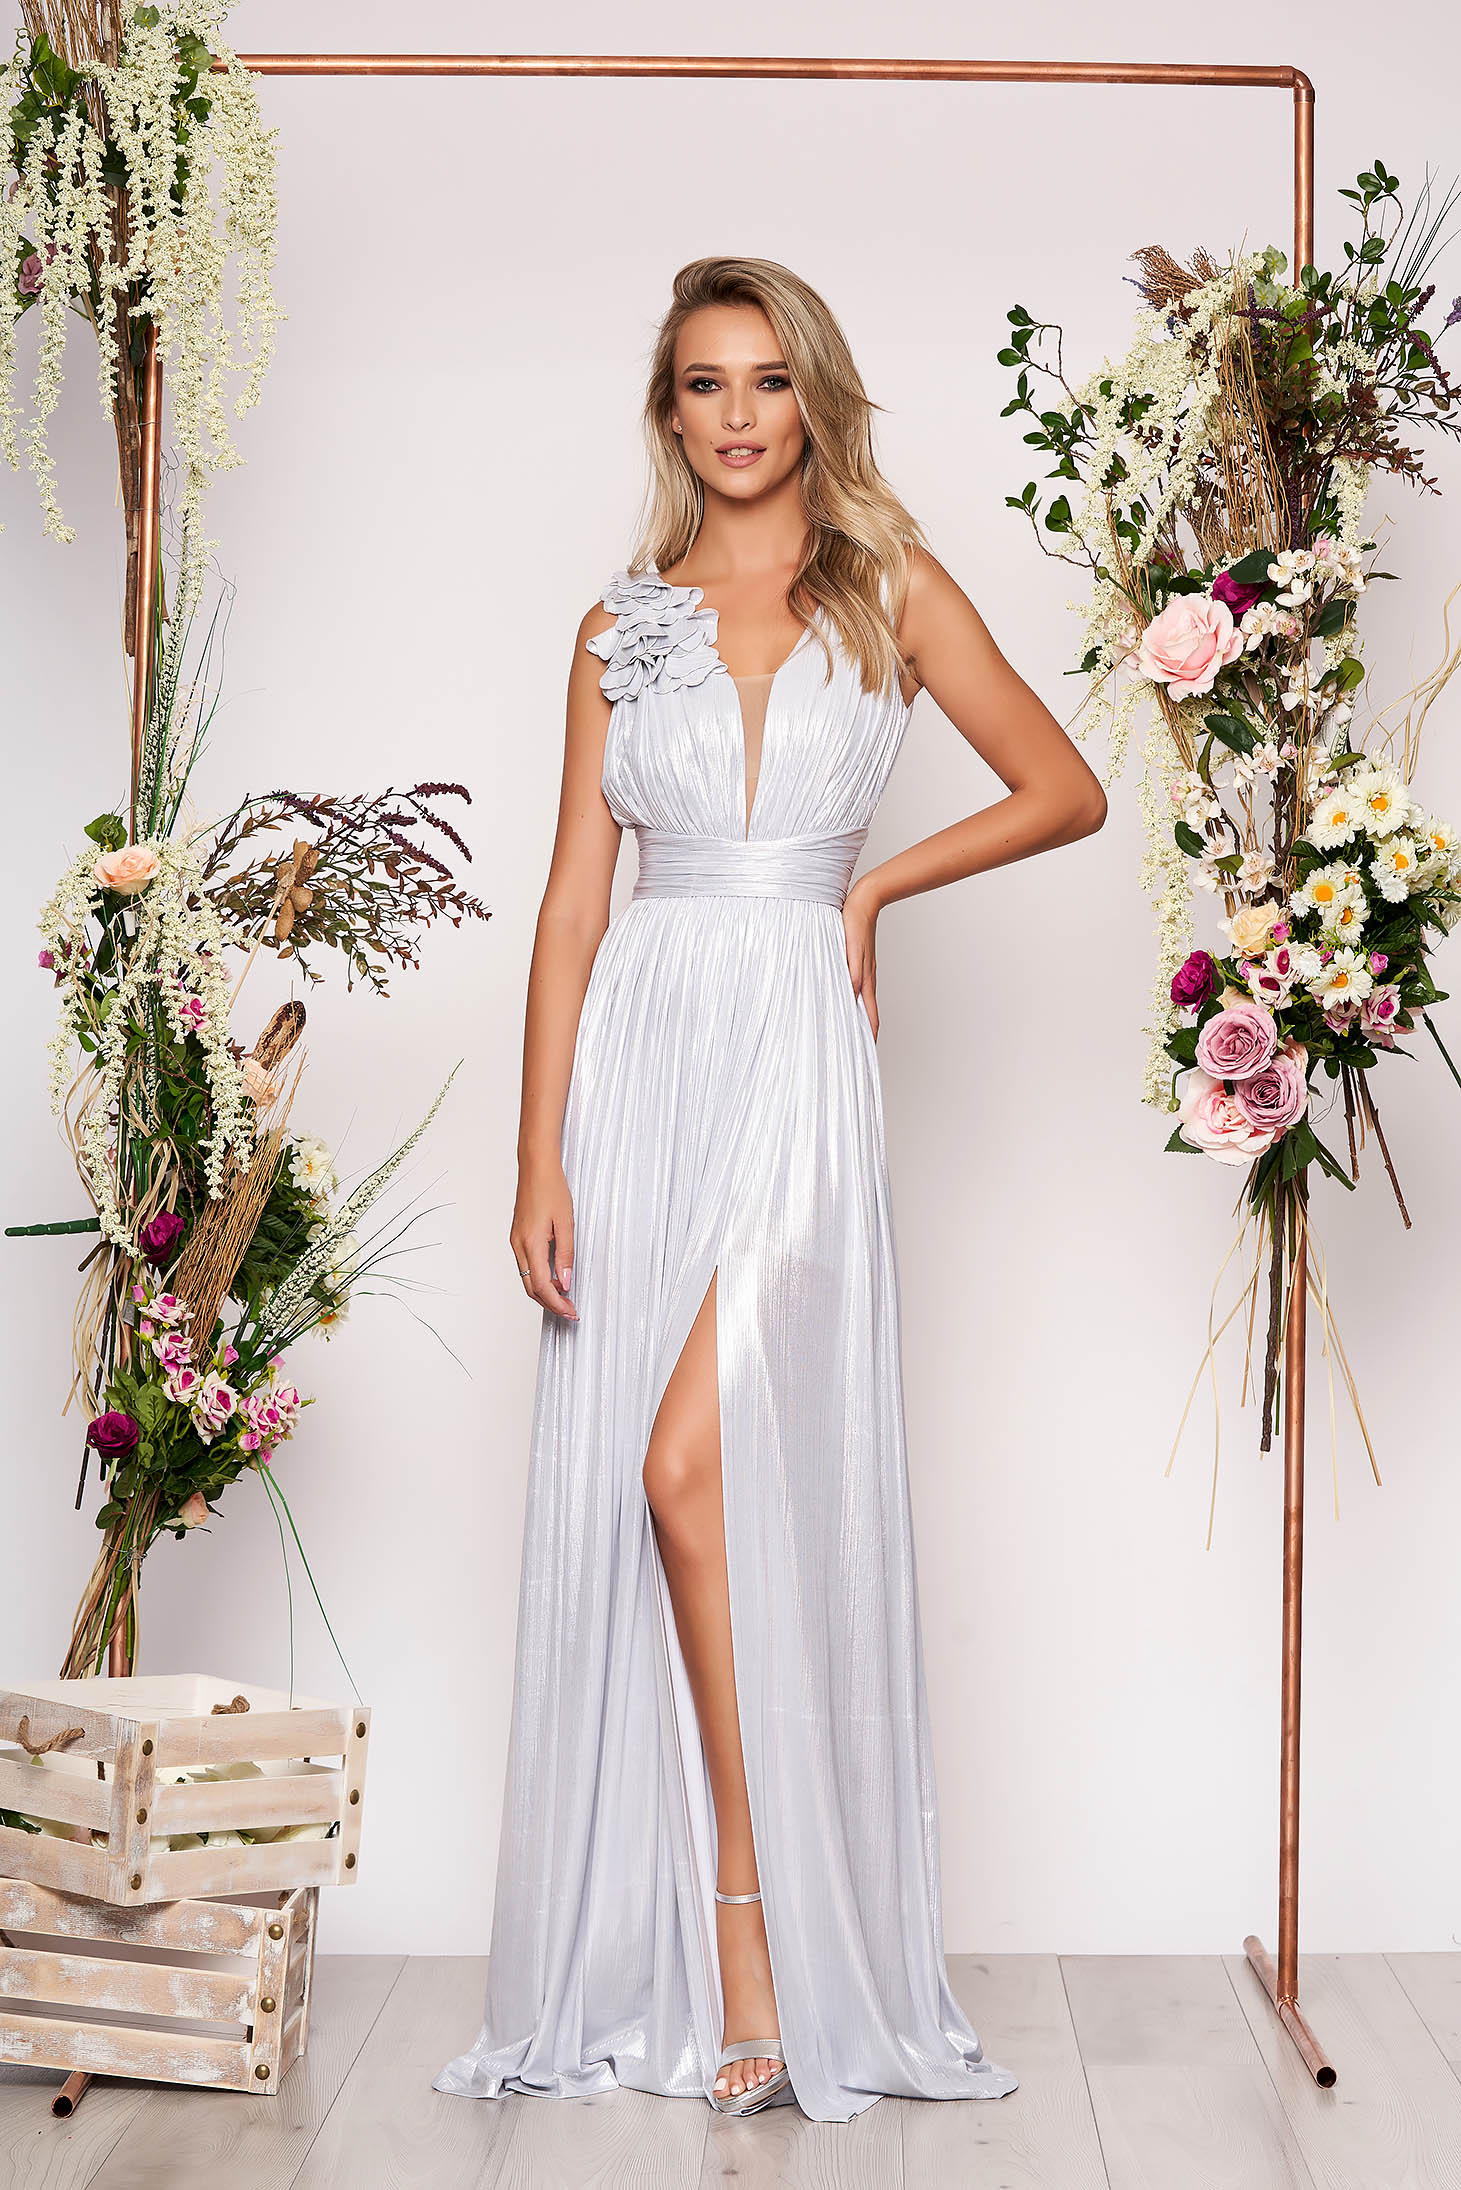 LaDonna silver occasional long cloche dress with deep cleavage from shiny fabric with floral details